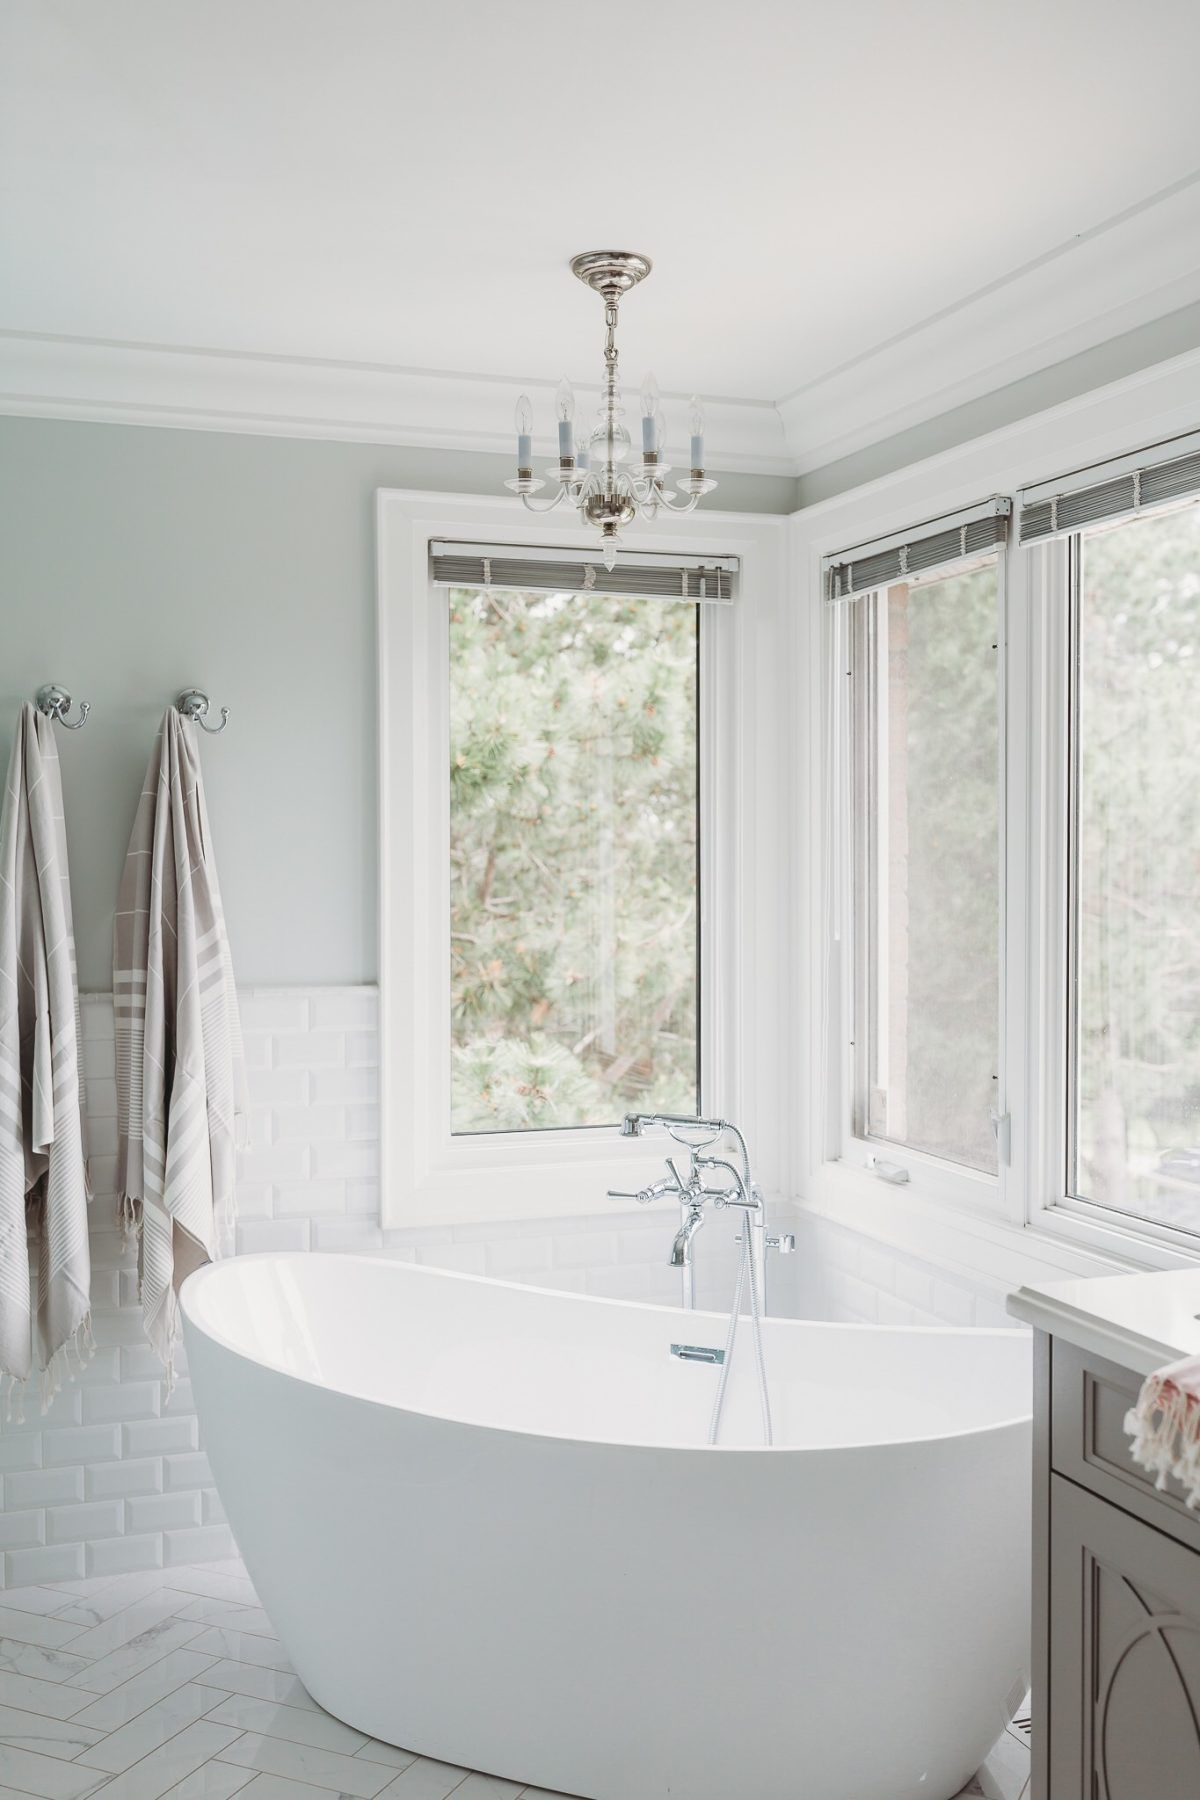 Read Original Story A Toronto Fixer Upper With Ridiculously Beautiful Natural Light Previous Next Mo In 2020 Bathroom Remodel Cost Bathroom Colors Fixer Upper Bathroom